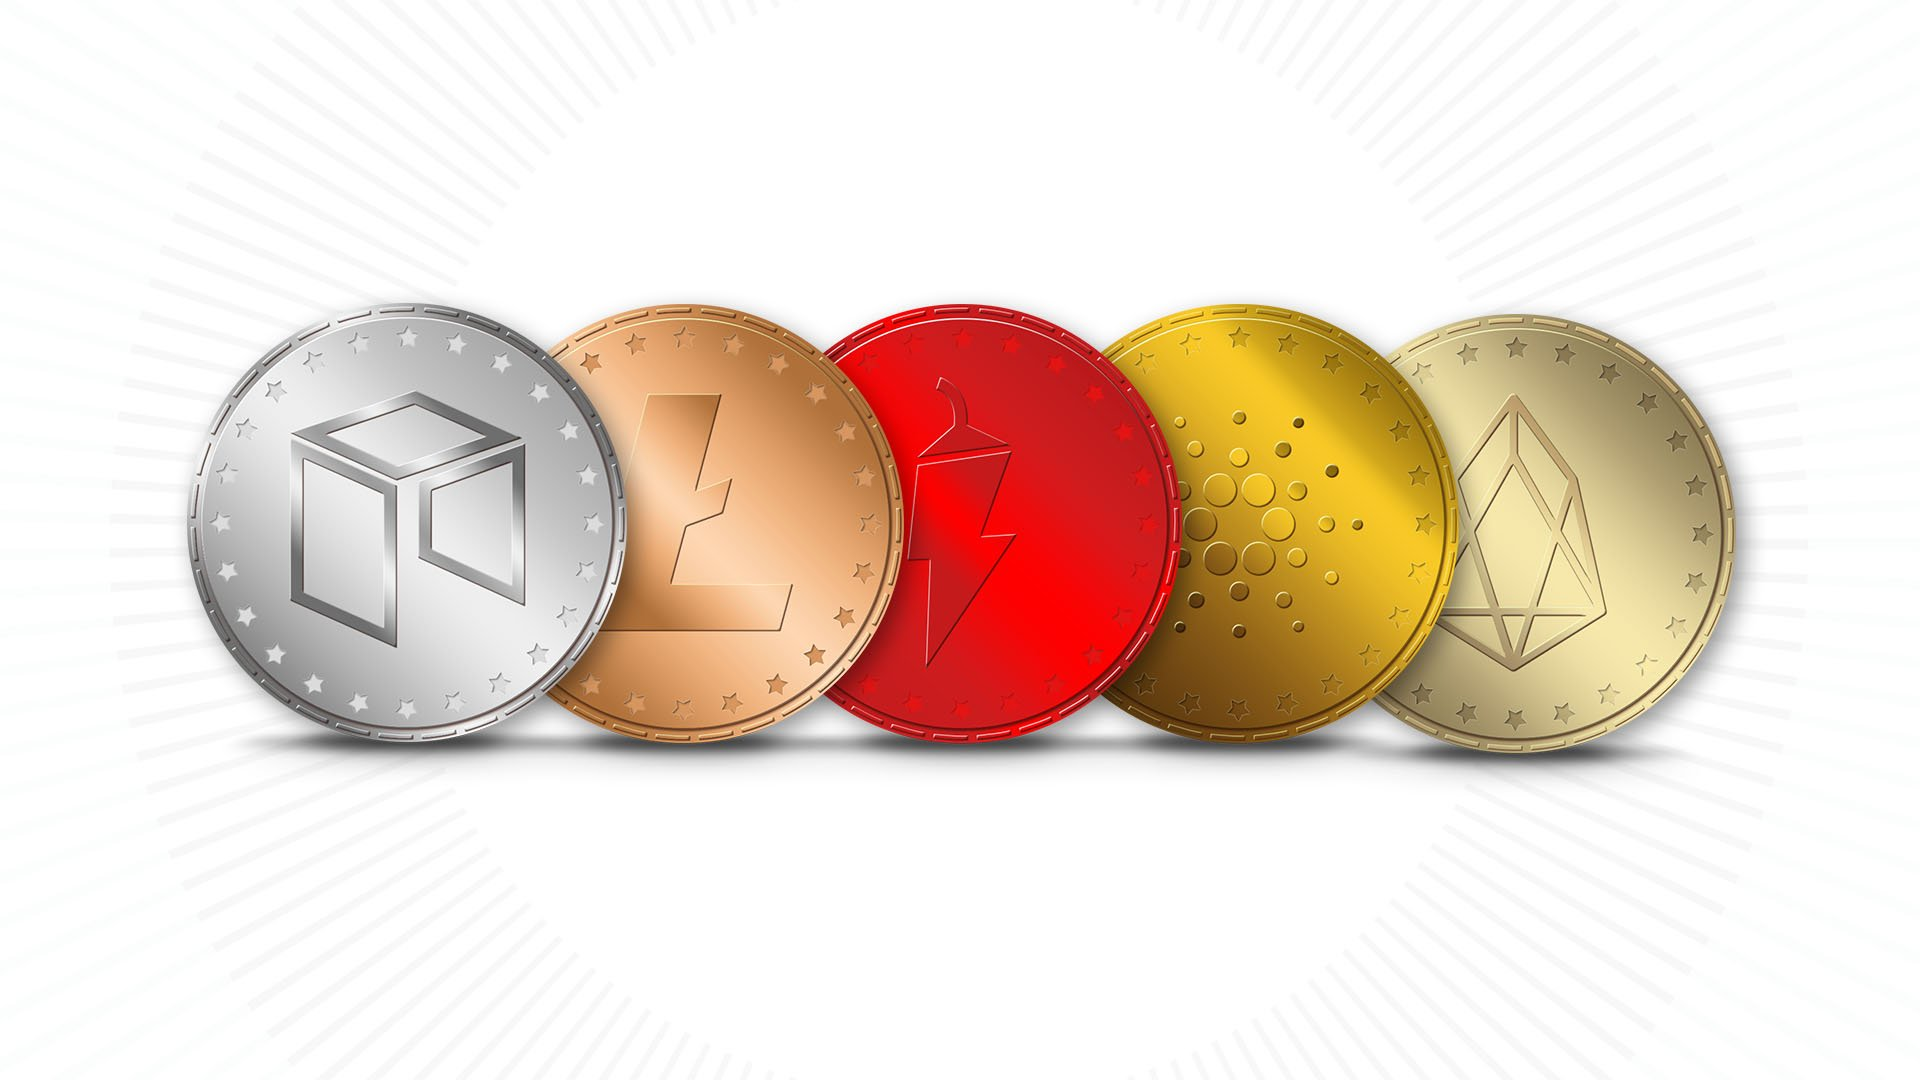 5 Altcoins to Look Out For this Summer